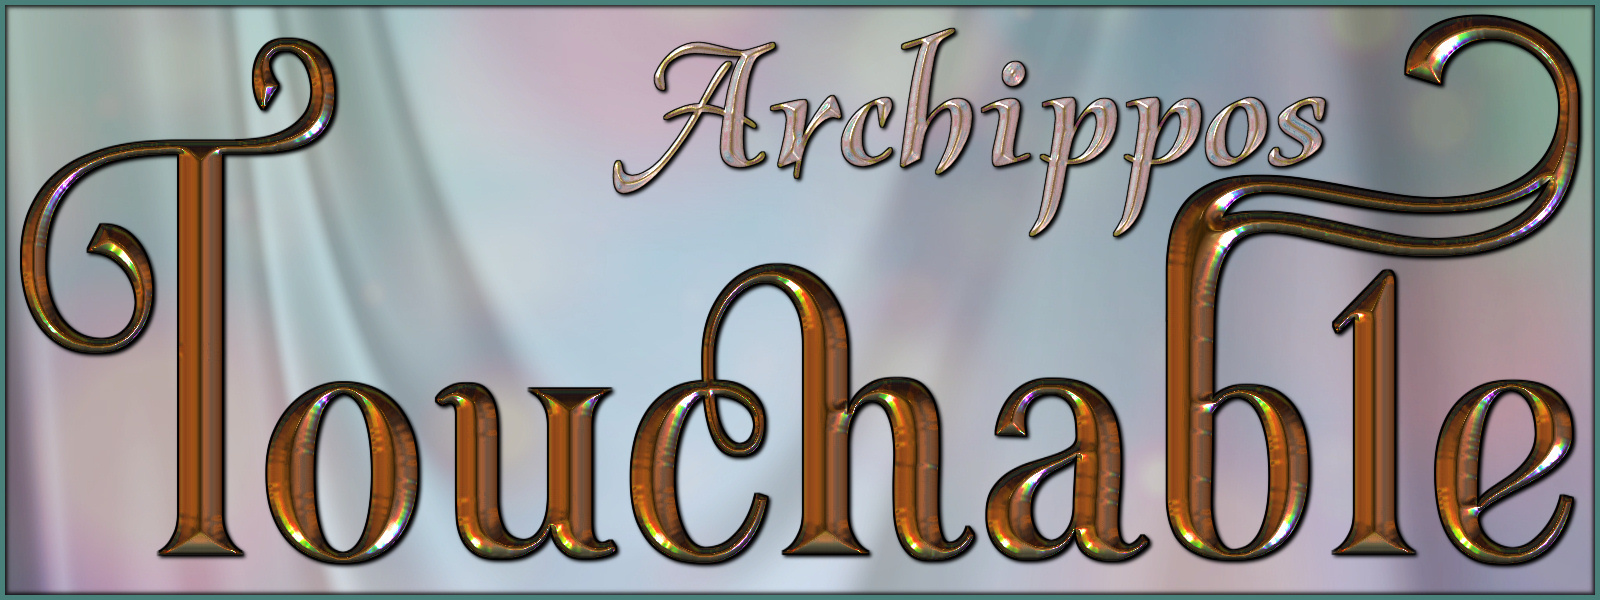 Touchable Archippos